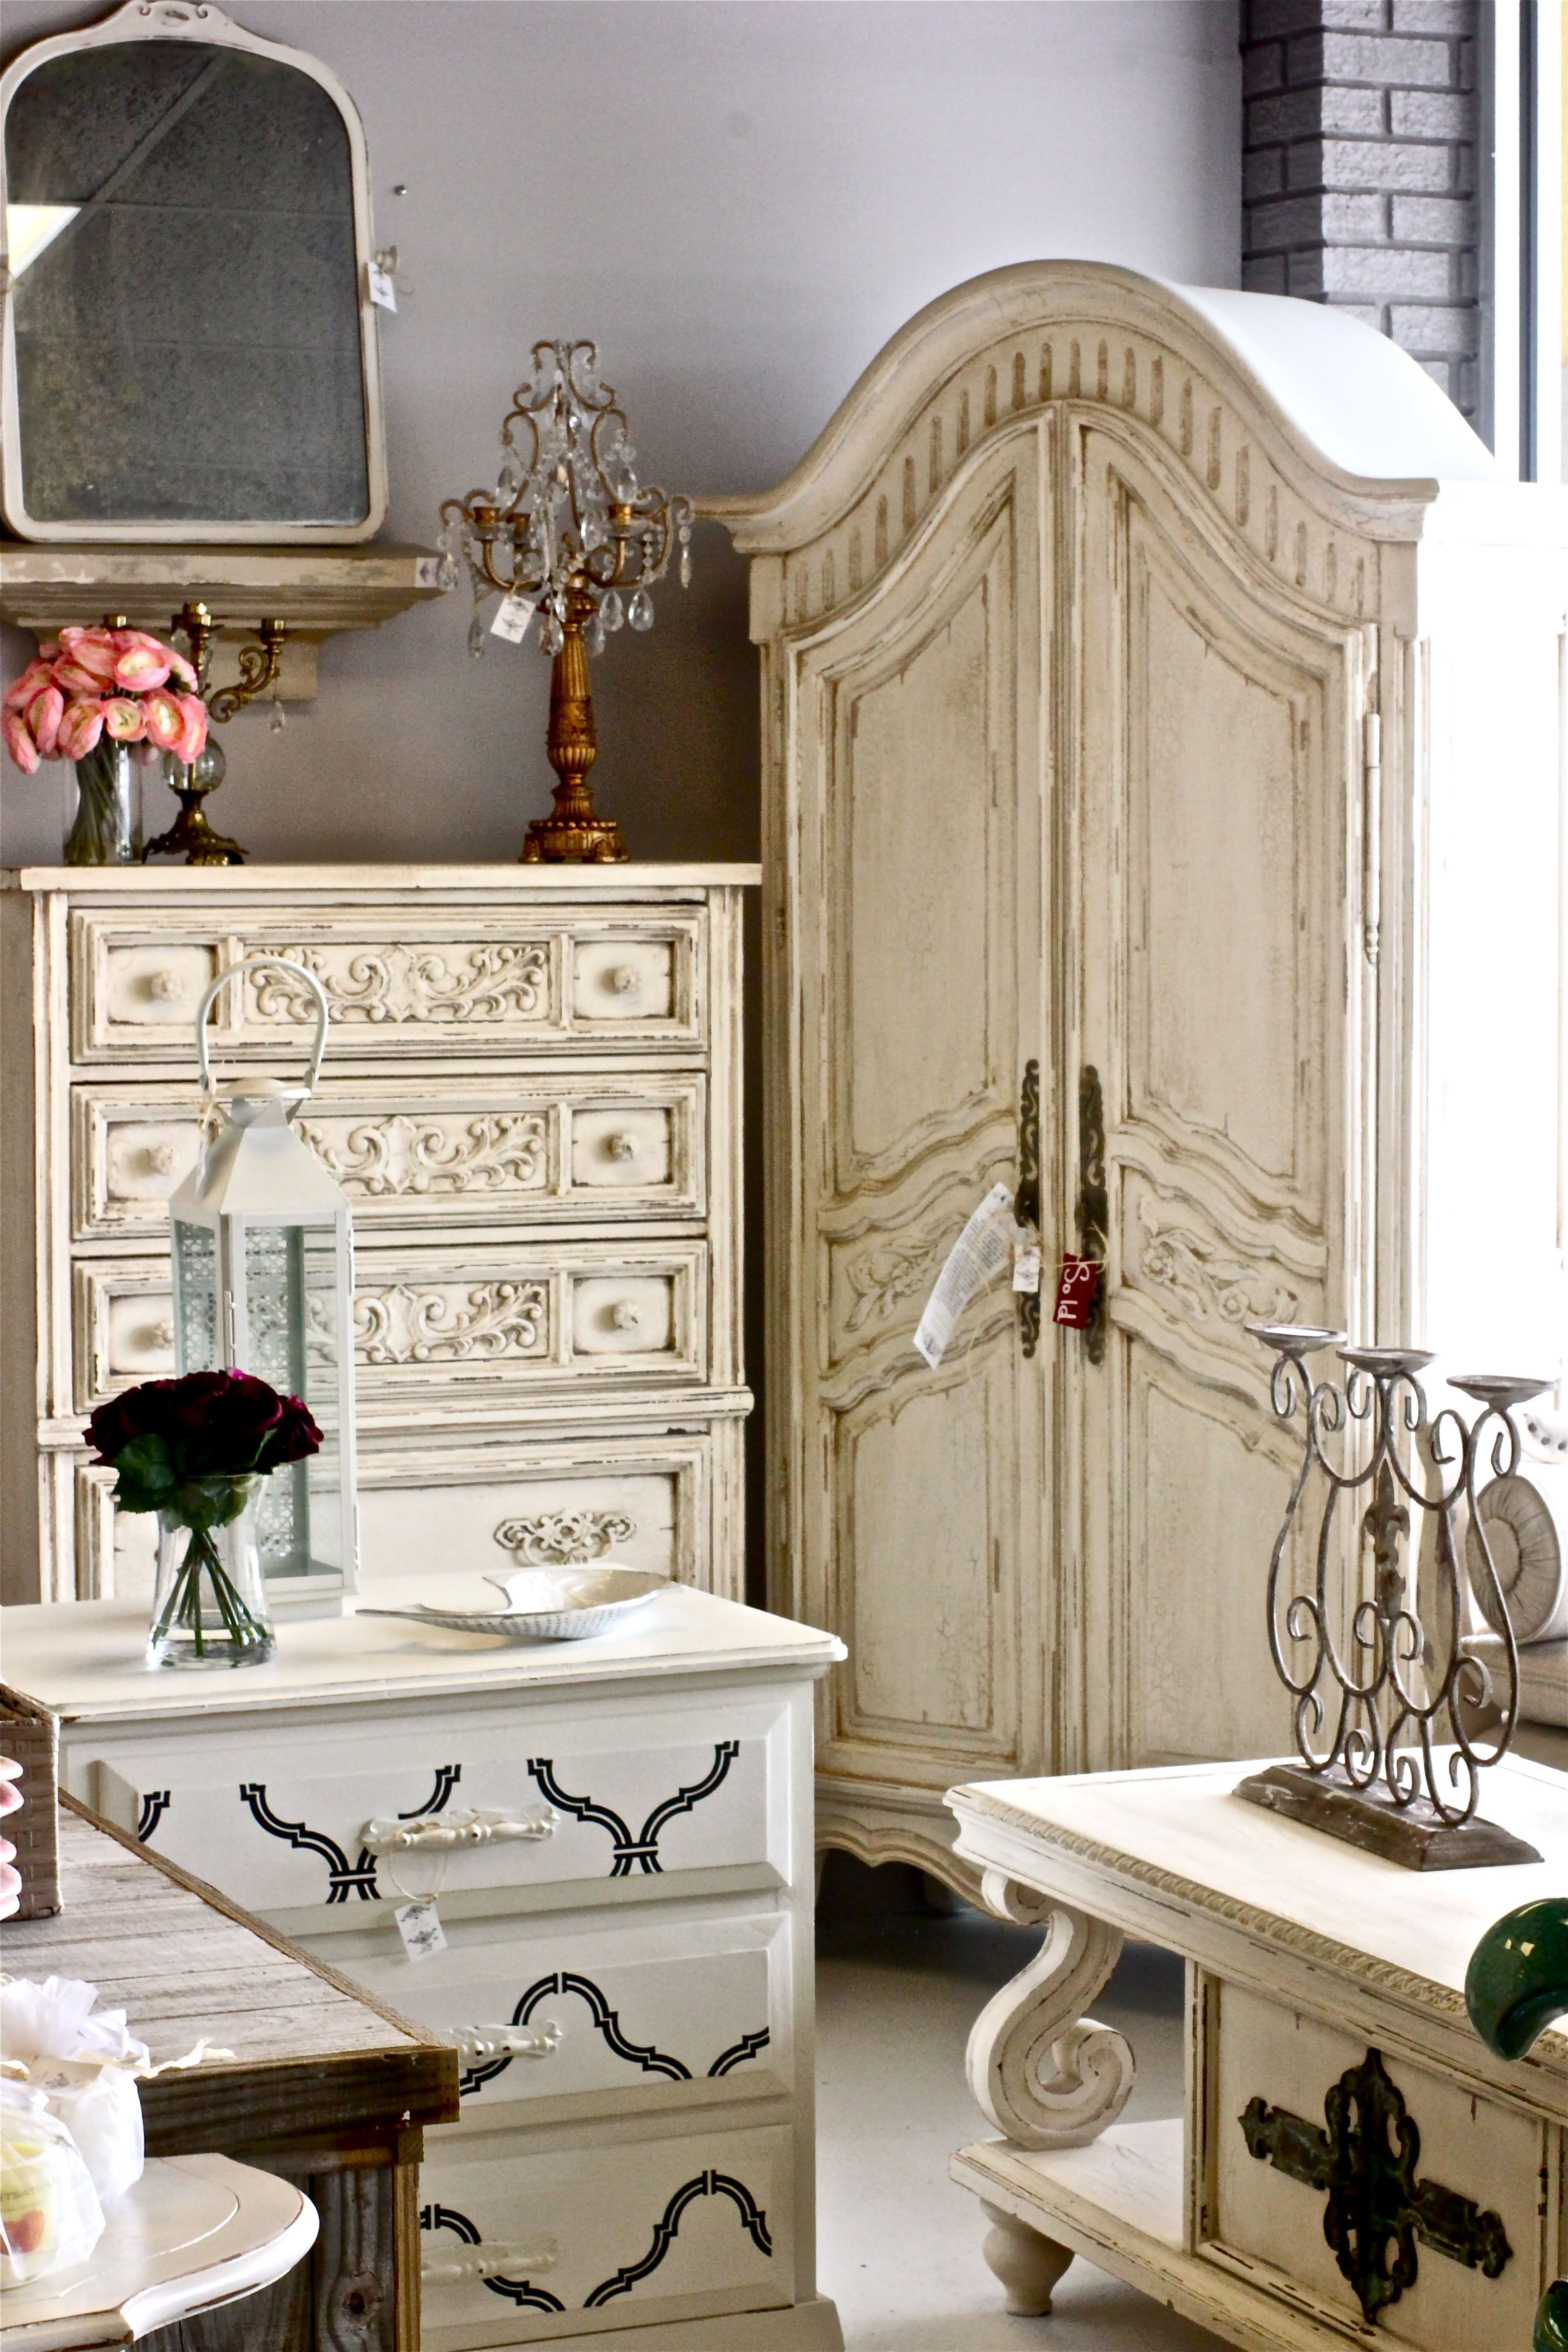 French Provincial highboy dresser, armoire, chest of